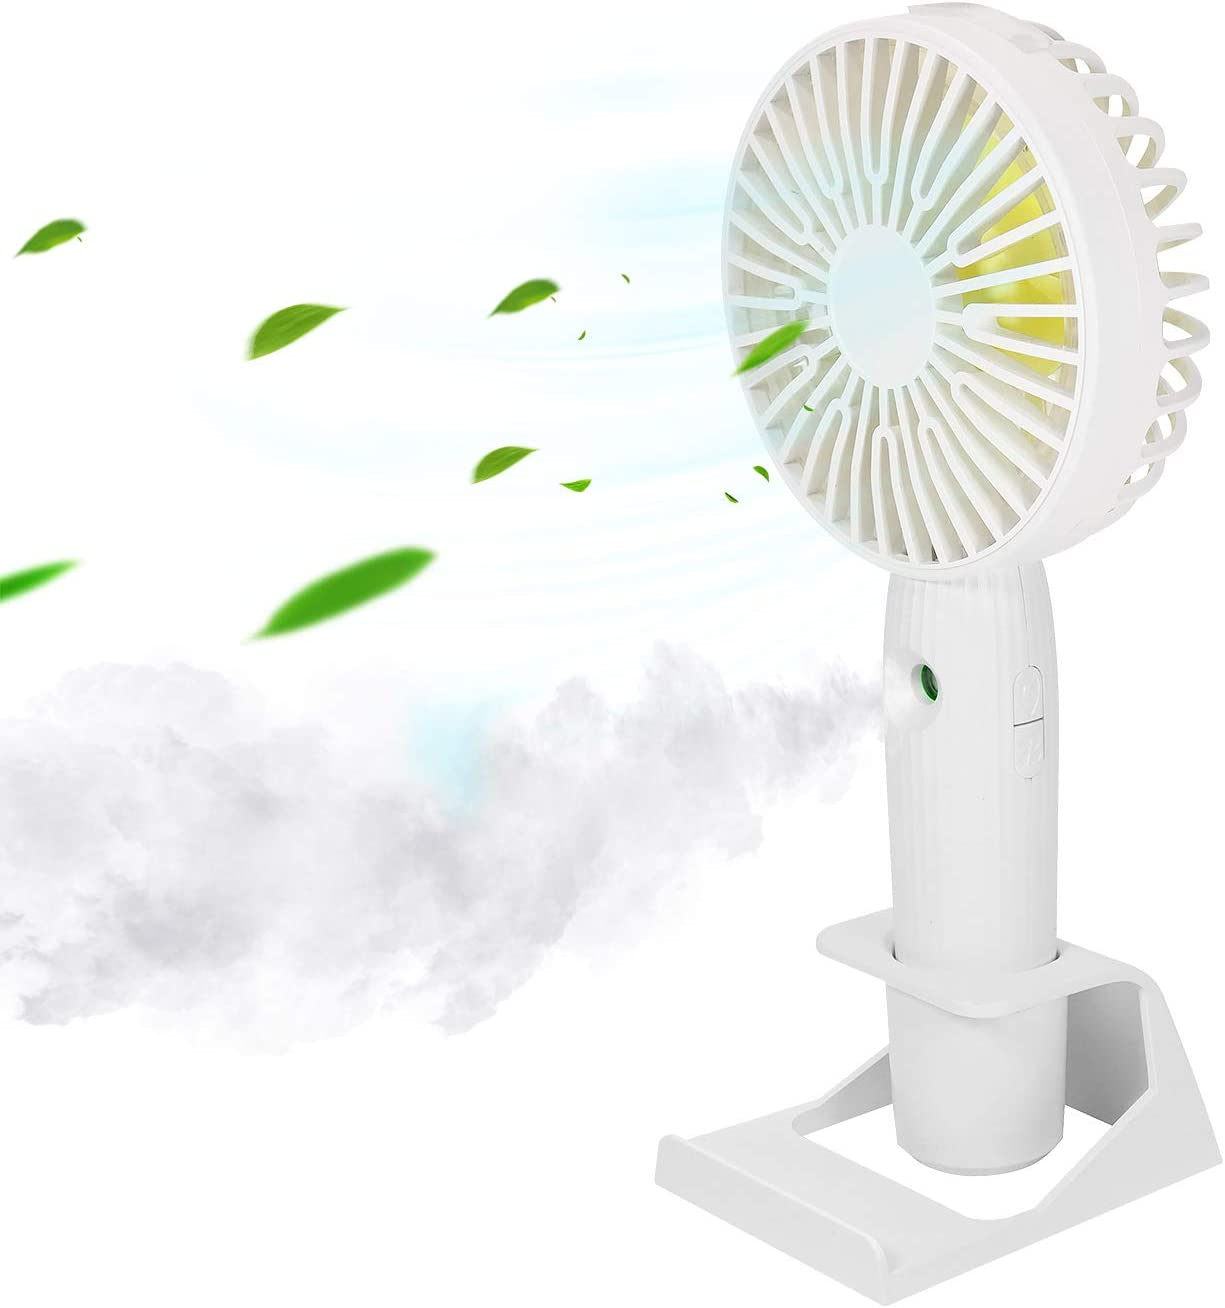 Misting Personal Fan, DeepDream Mini Handheld Fan, Small Portable Spray Fan Speed Adjustable, USB Desk Colorful Nightlight Fan for Kids Girls Woman Man Home Office Outdoor Travel (White)